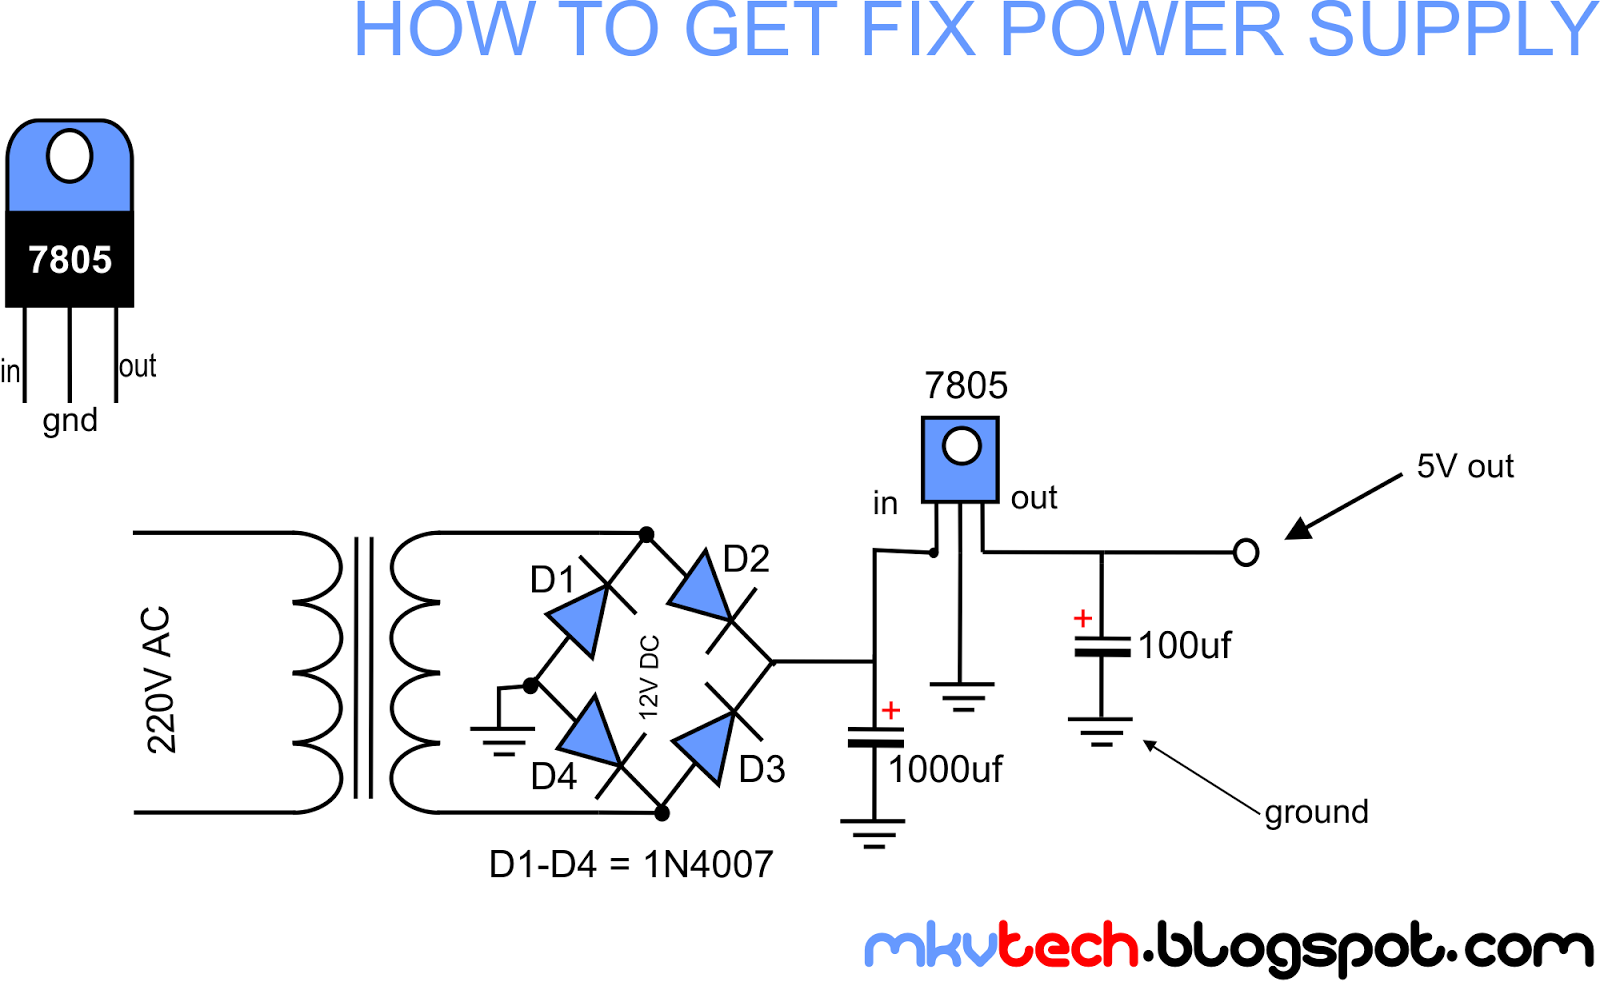 hight resolution of the circuit diagram shown above shows how to connect a linear regulator to create a fixed power supply to your load in this diagram we are going to use